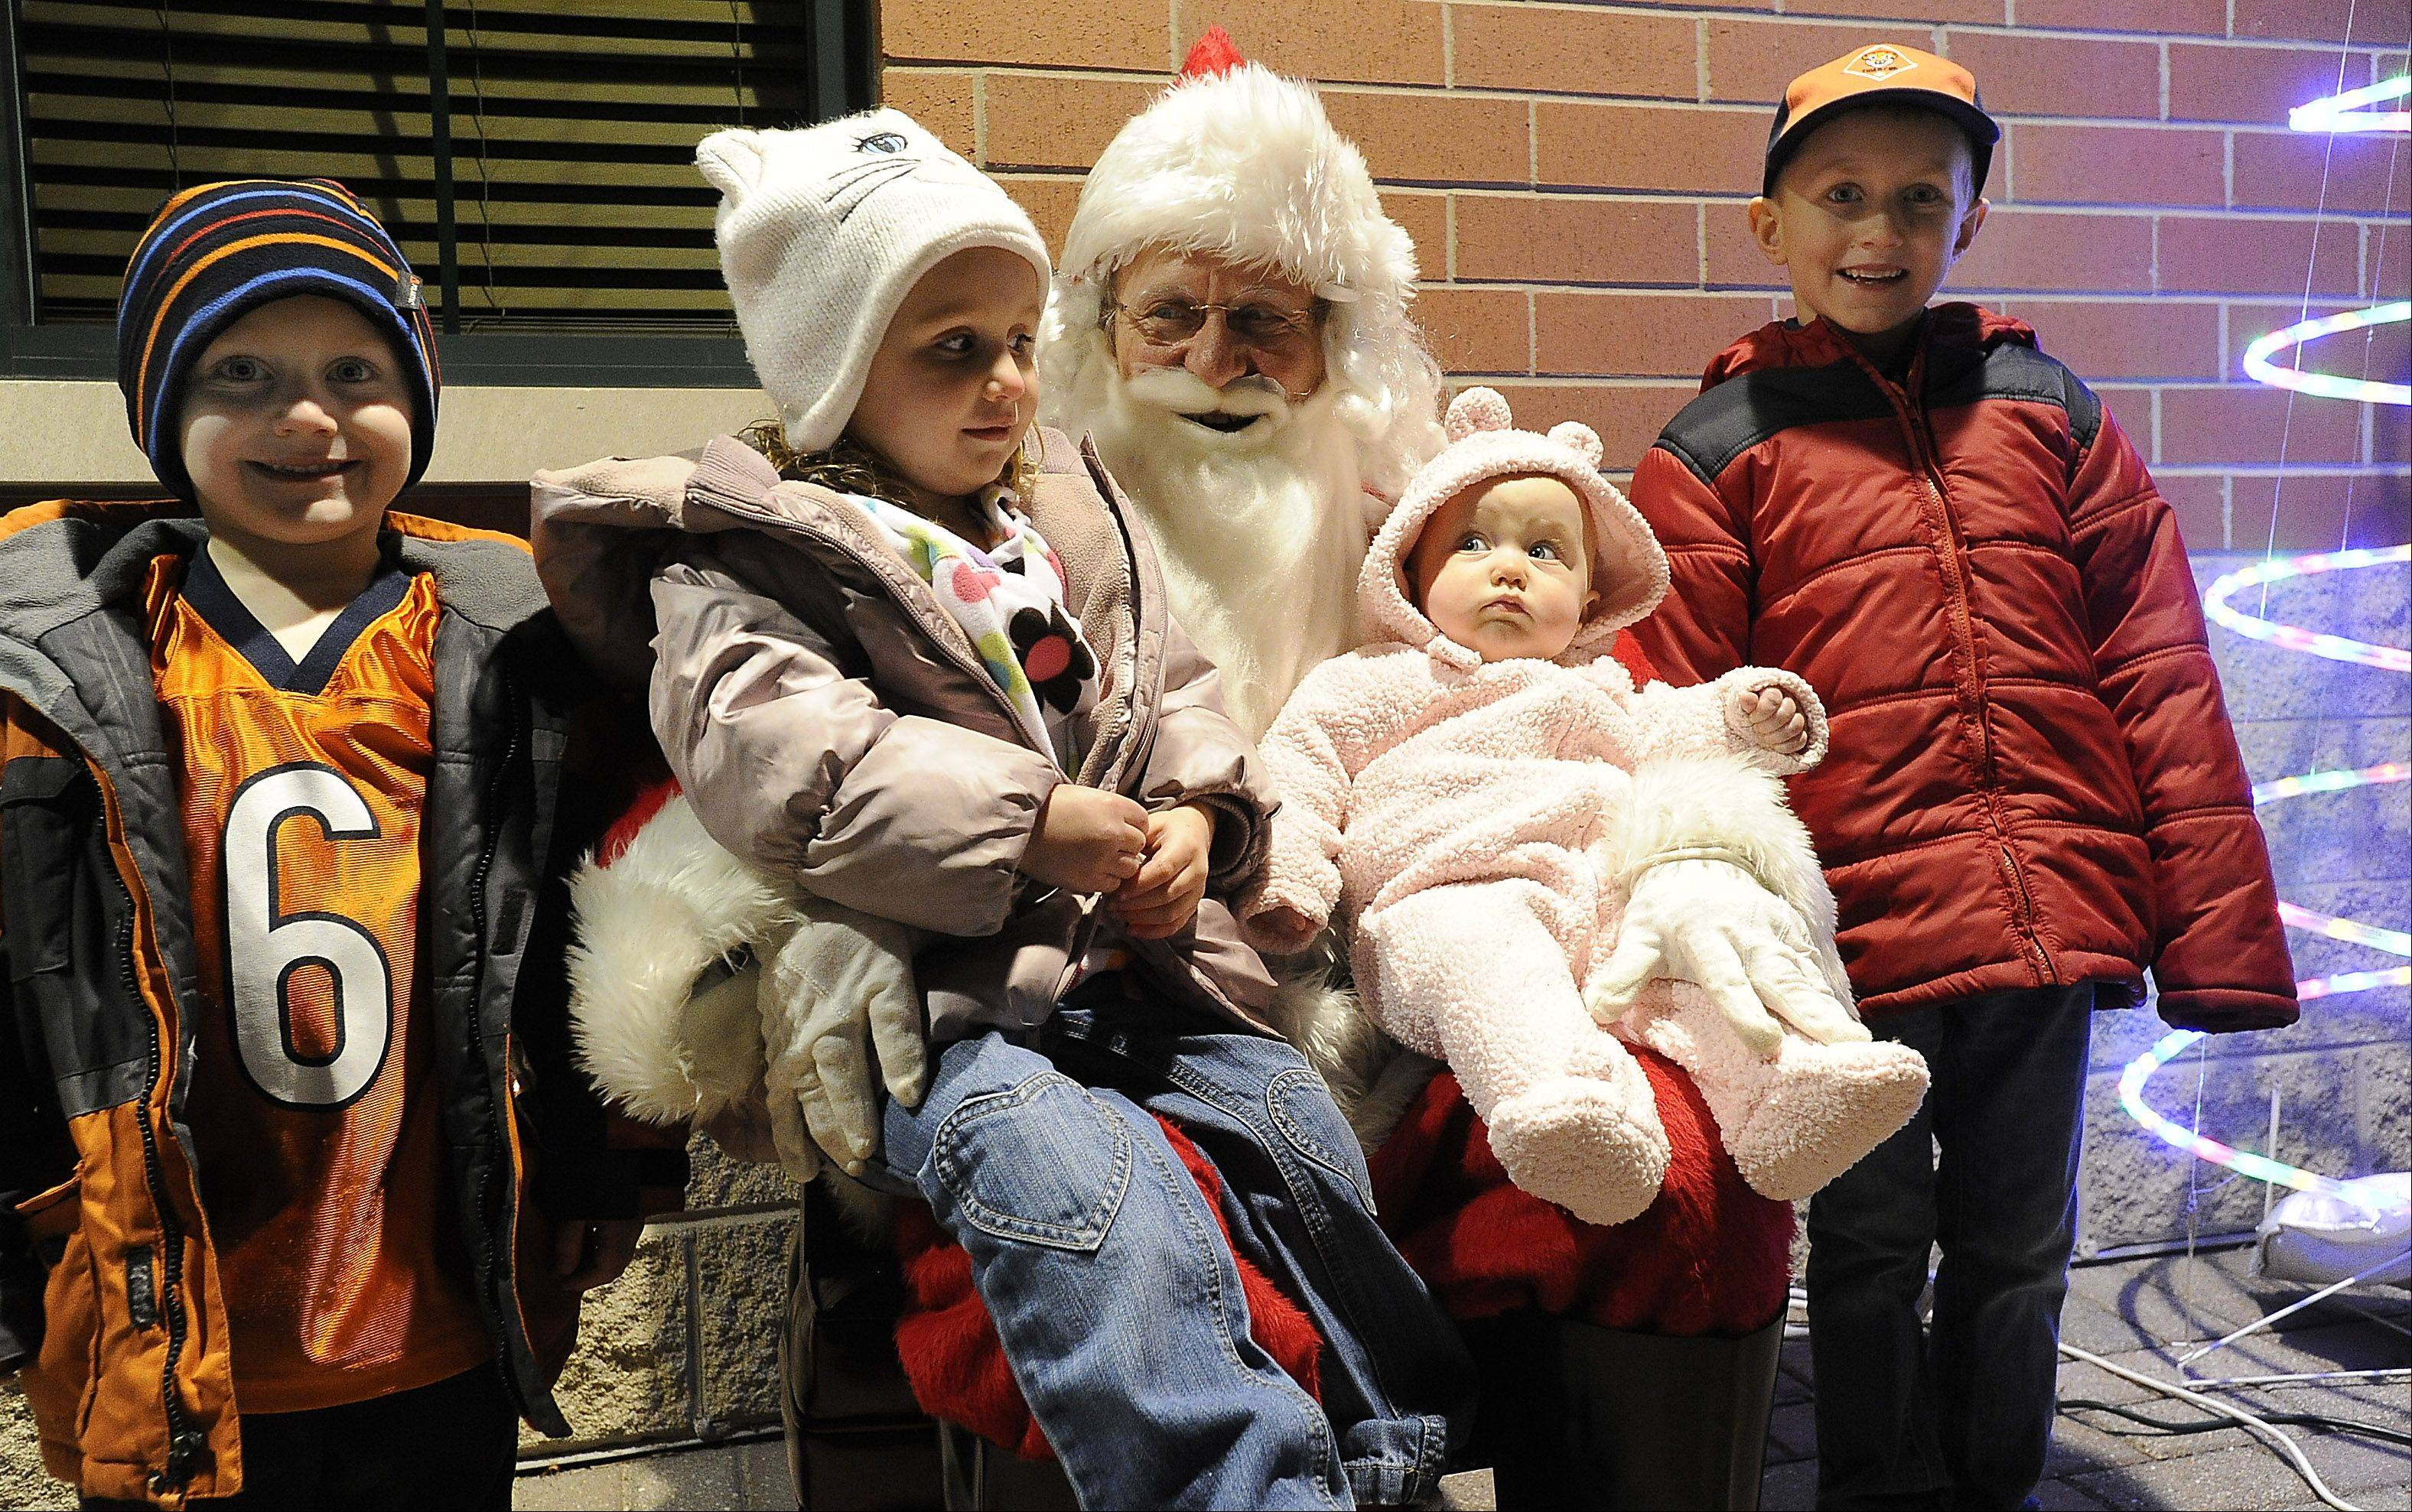 The Mabry children of Prospect Heights — Matthew, 4, Graceleen, 3, Mikayla, 8 months, and Nathan, 7 — visit with Santa at the Prospect Heights tree-lighting held at city hall on Saturday.